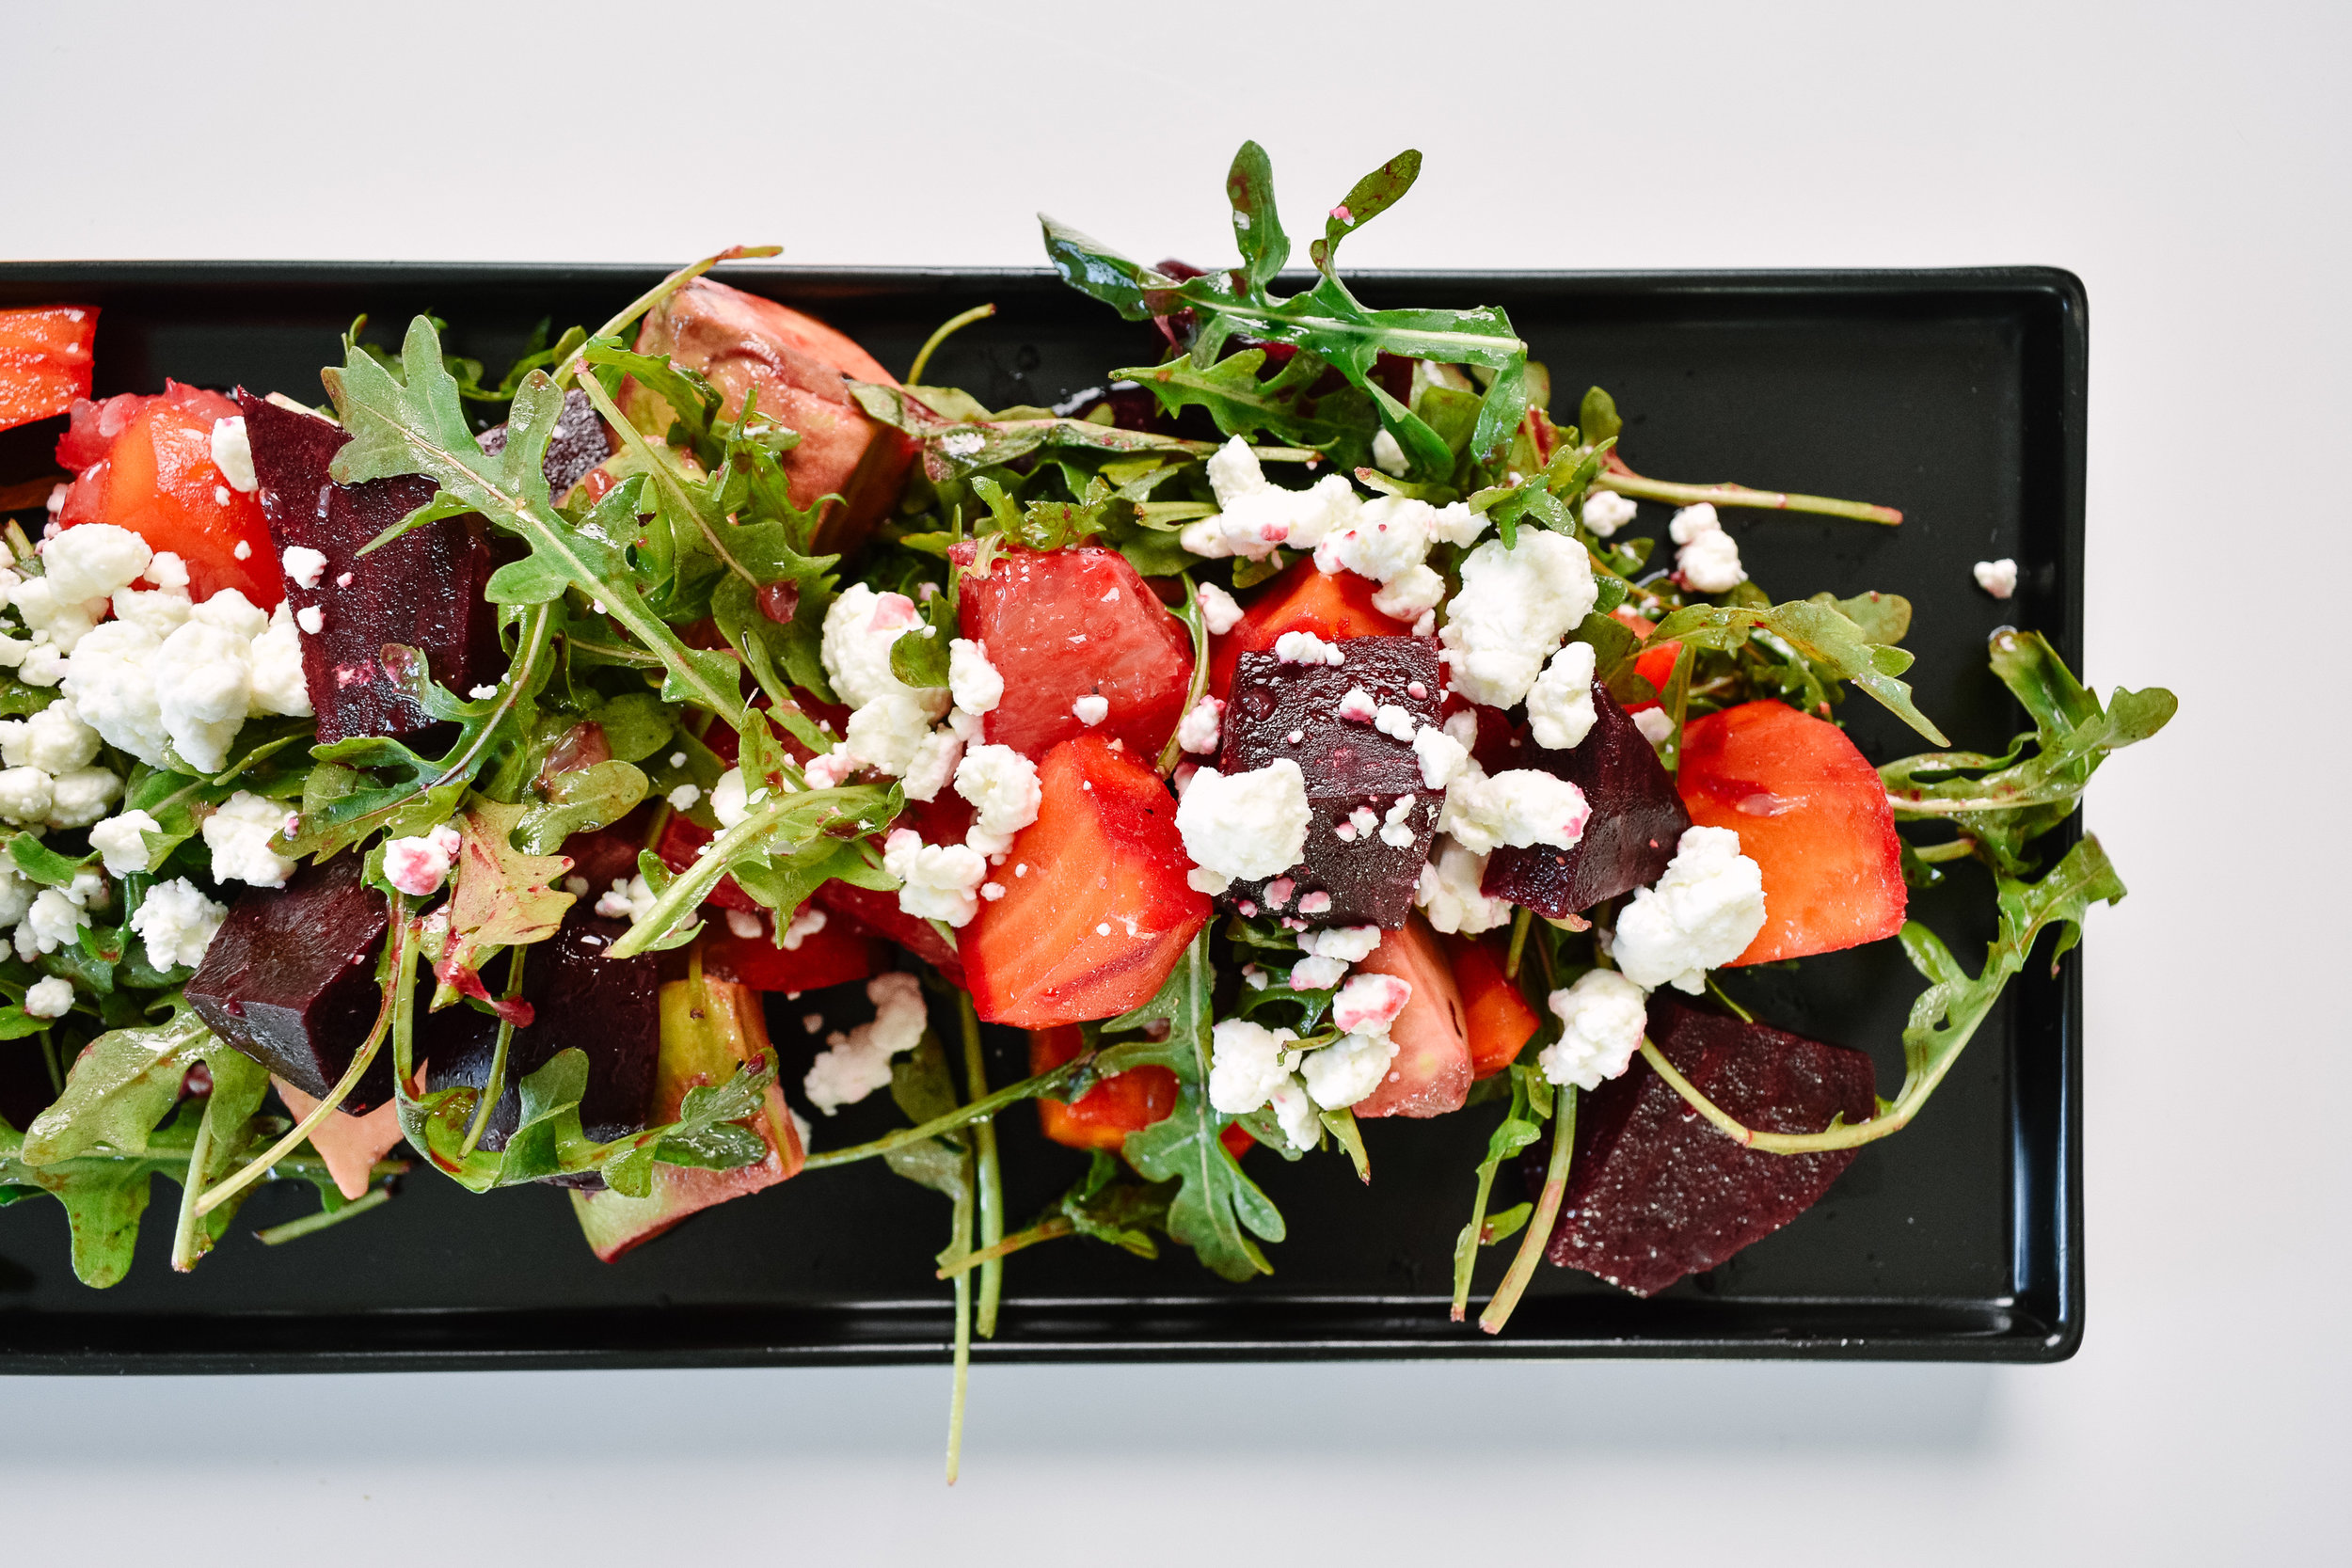 Beet and citrus salad with goat cheese